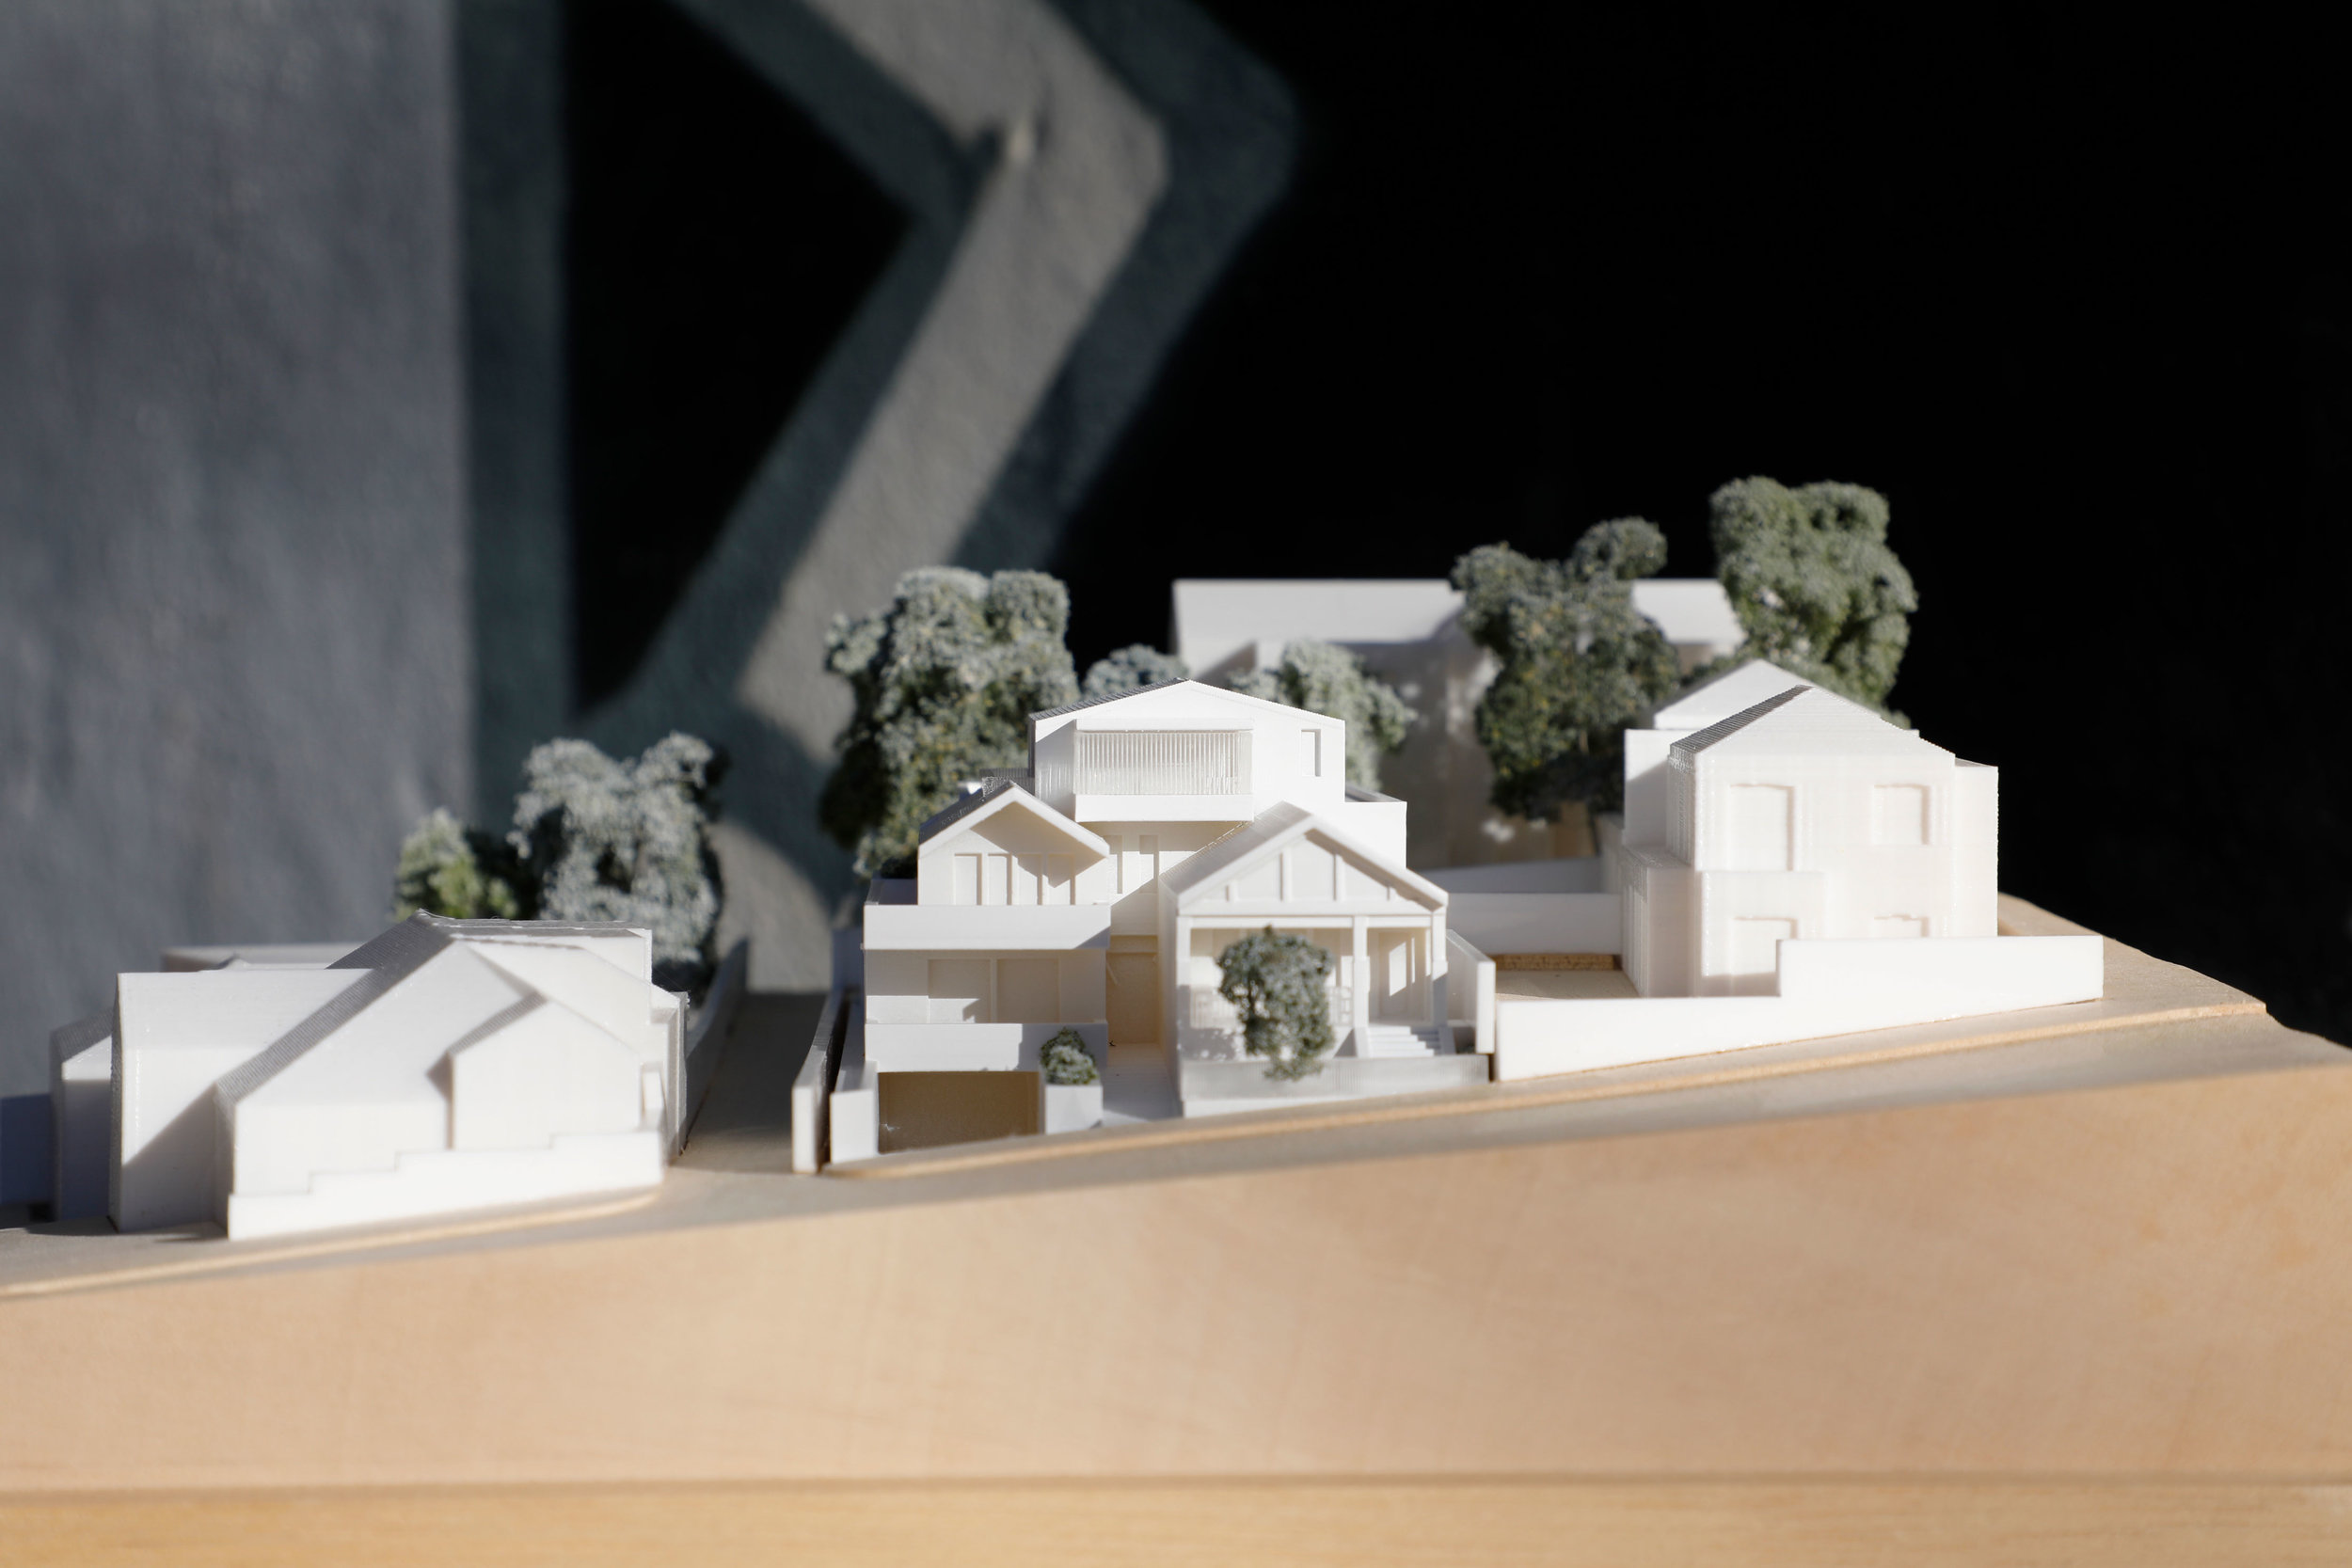 DA Model Woollahra Council 1:200